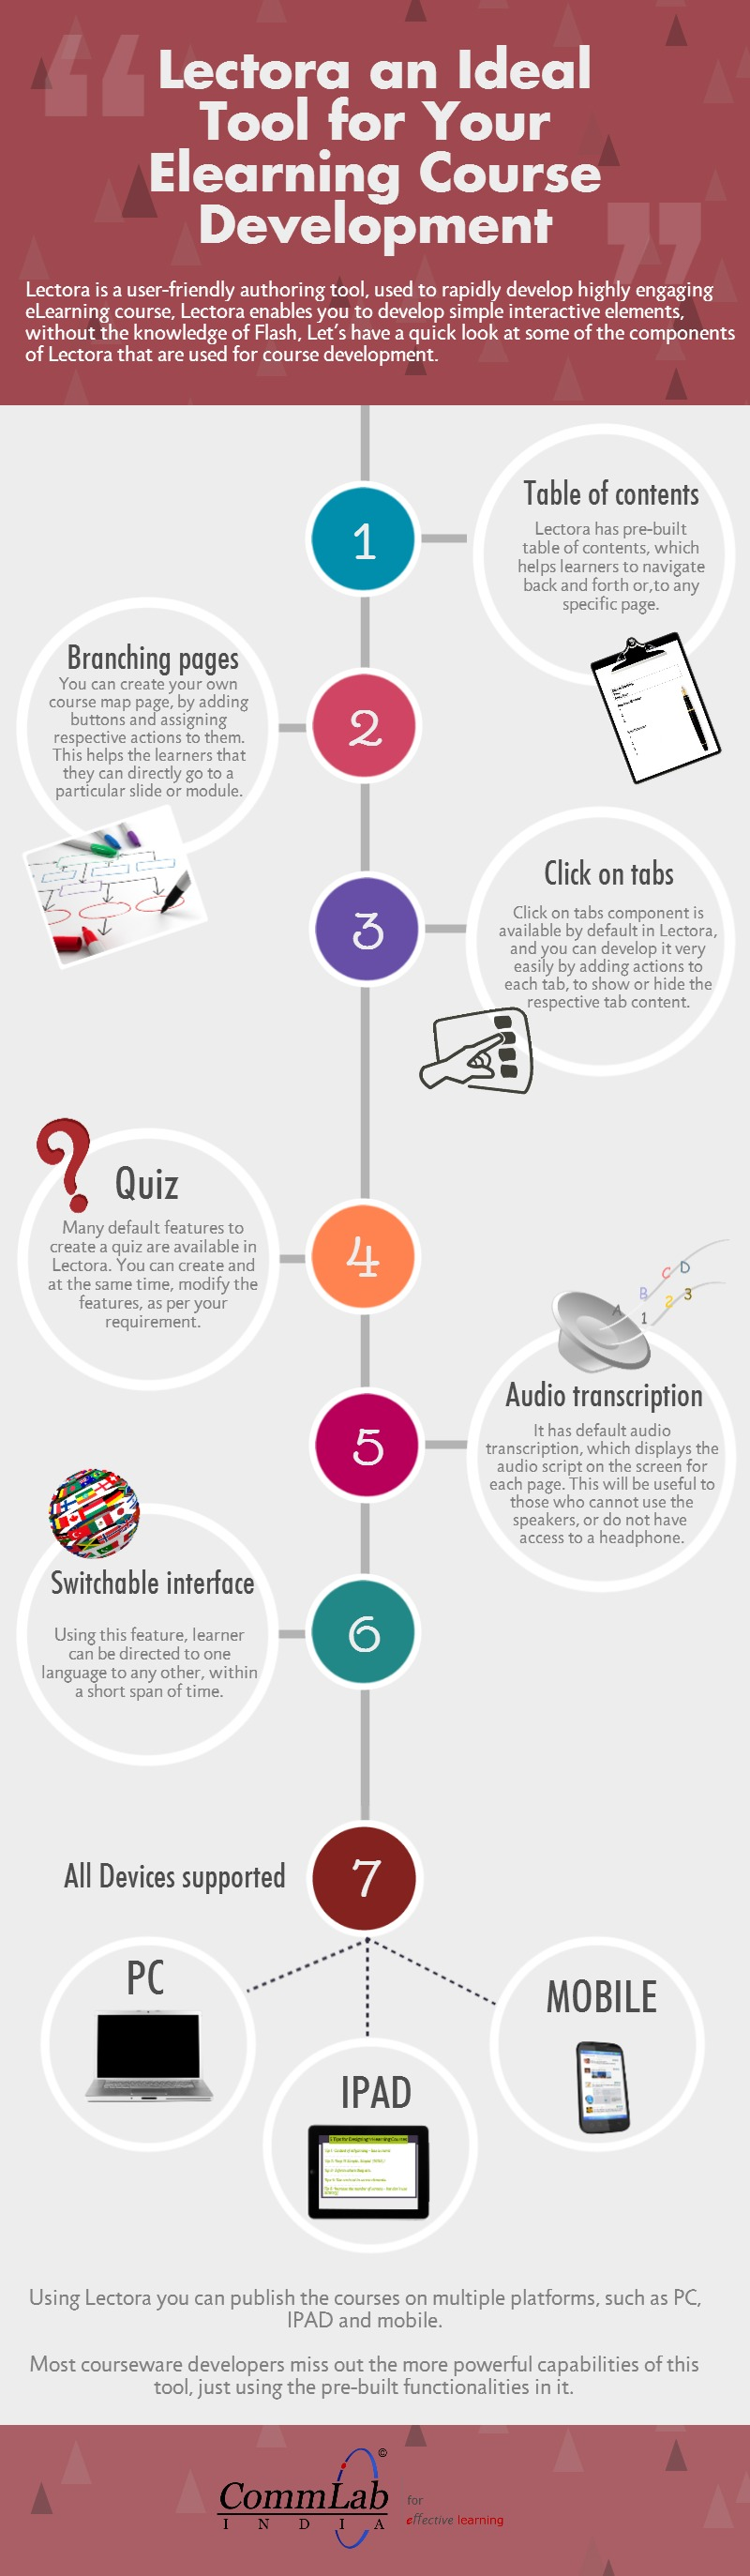 Lectora Inspire – An Ideal Tool for E-learning Development – An Infographic